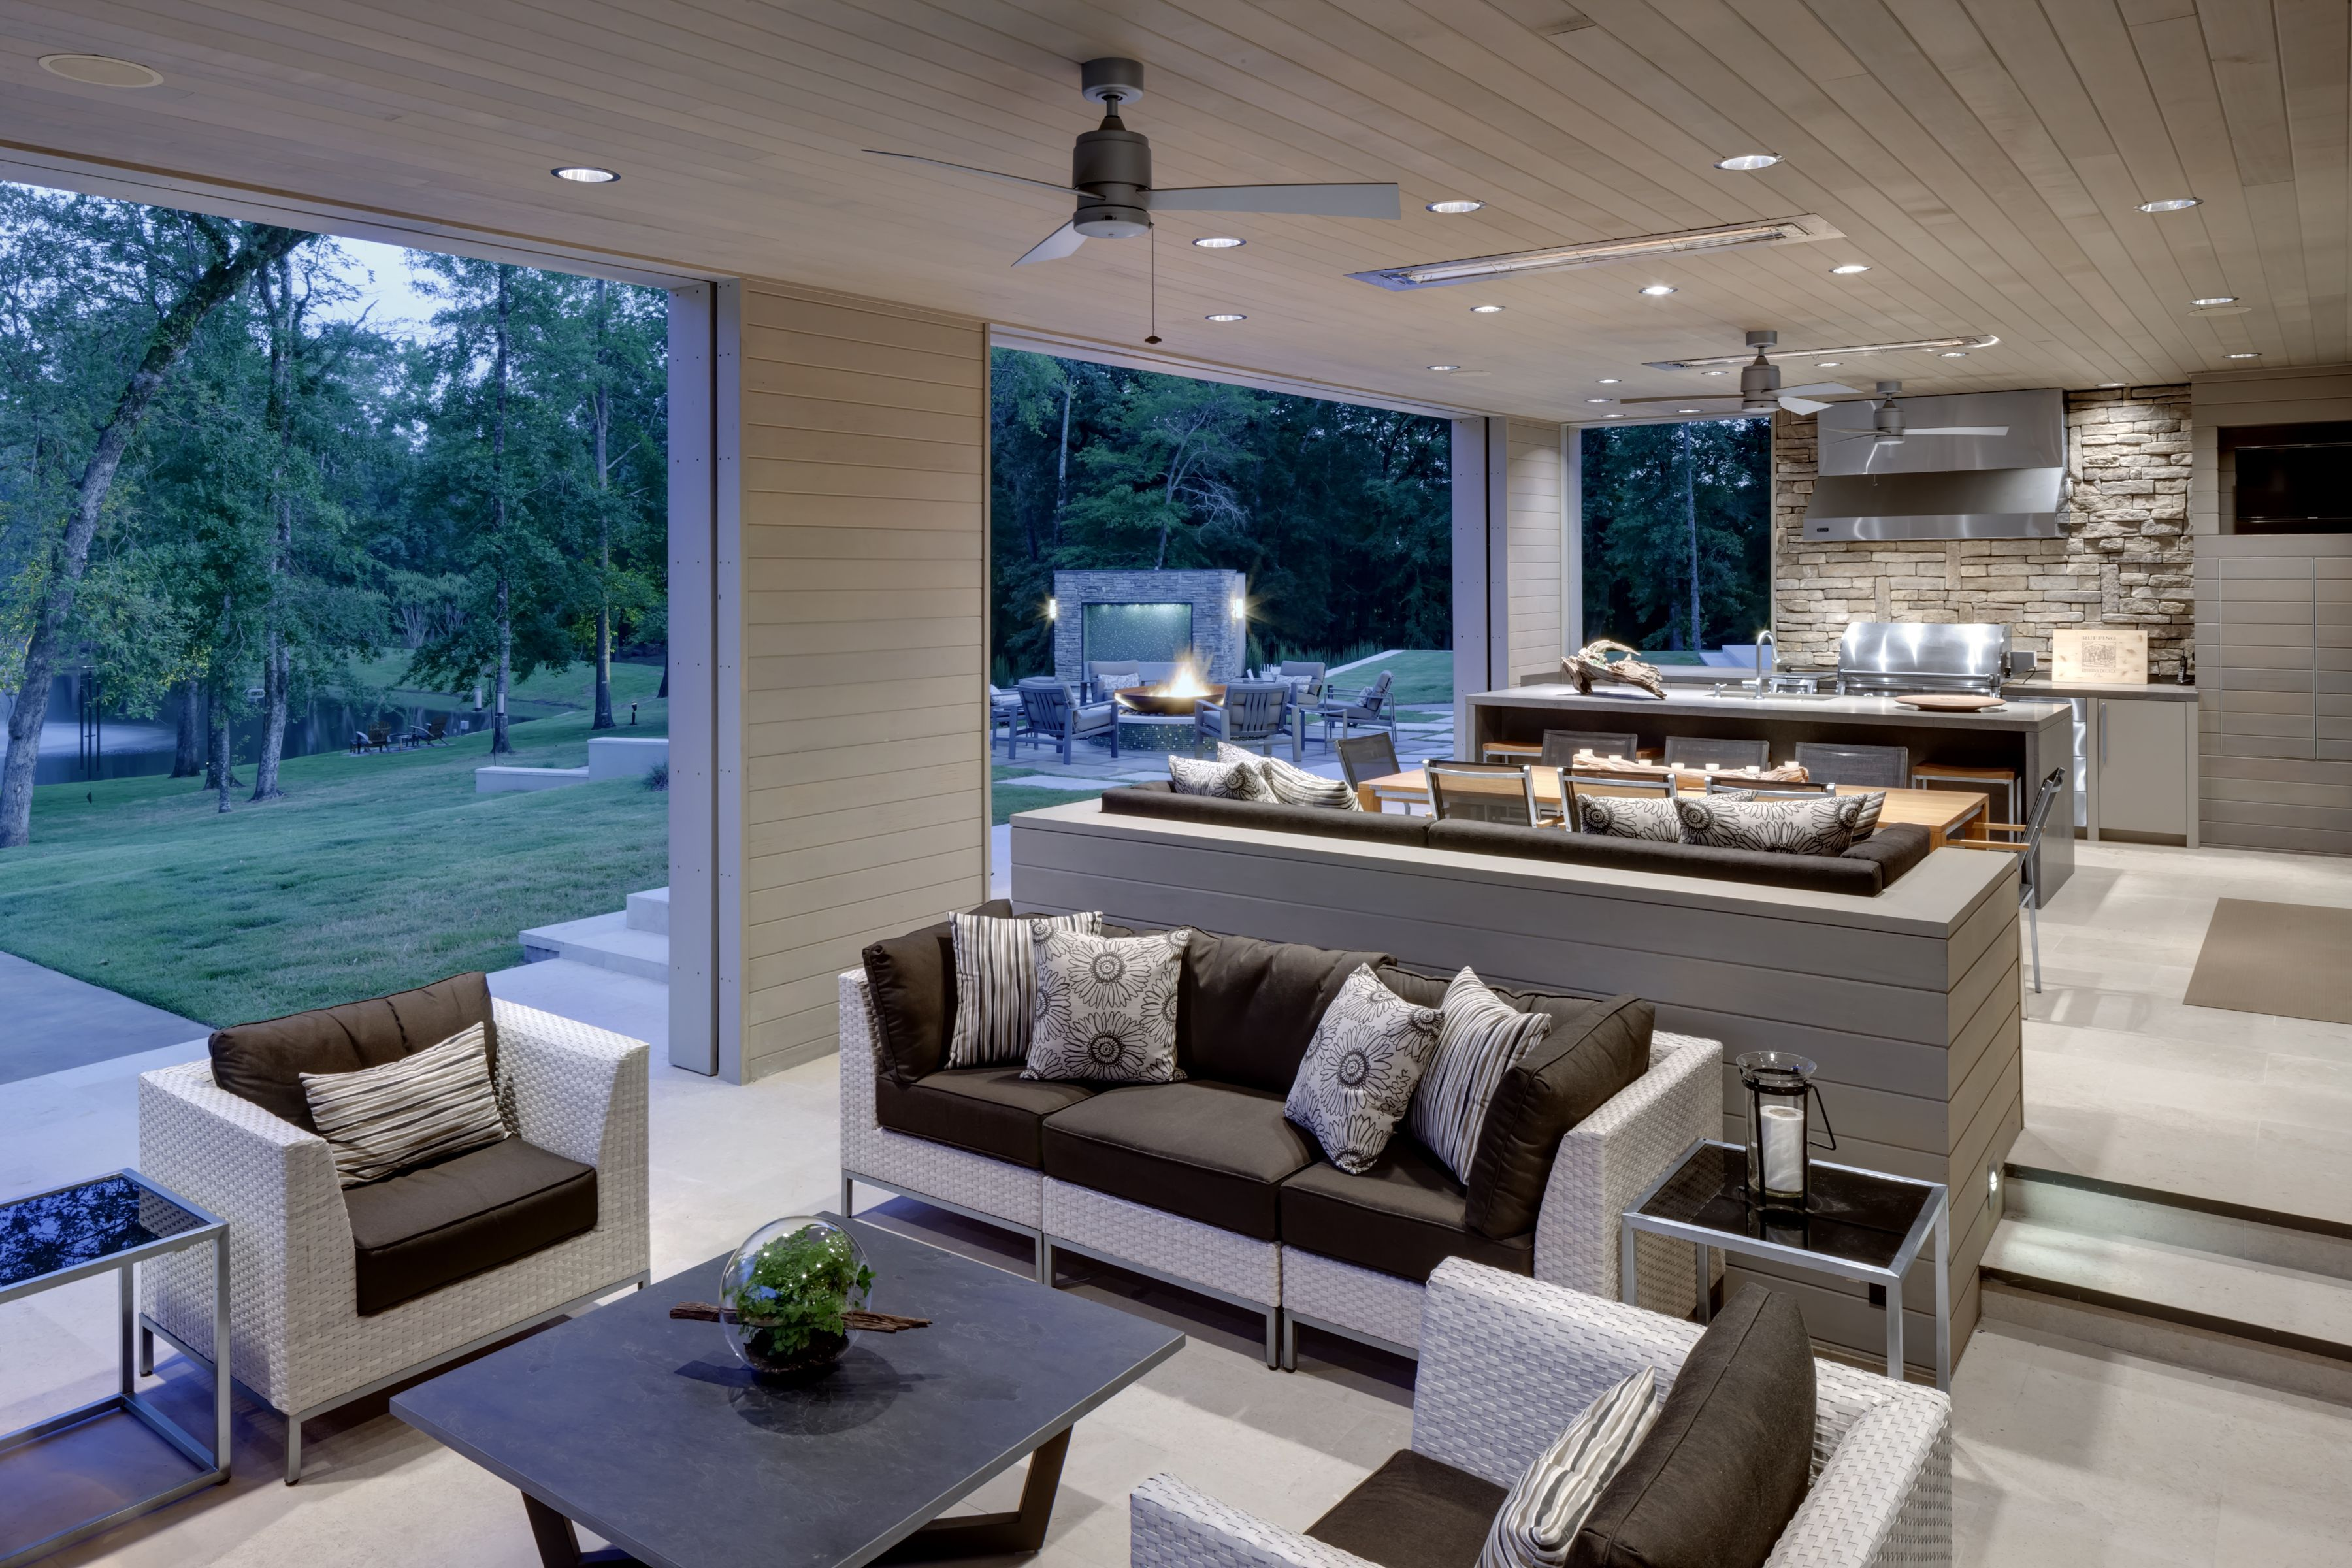 Louisiana Contemporary Estate - Linda Fritschy ... on Indoor Outdoor Living Spaces id=95792